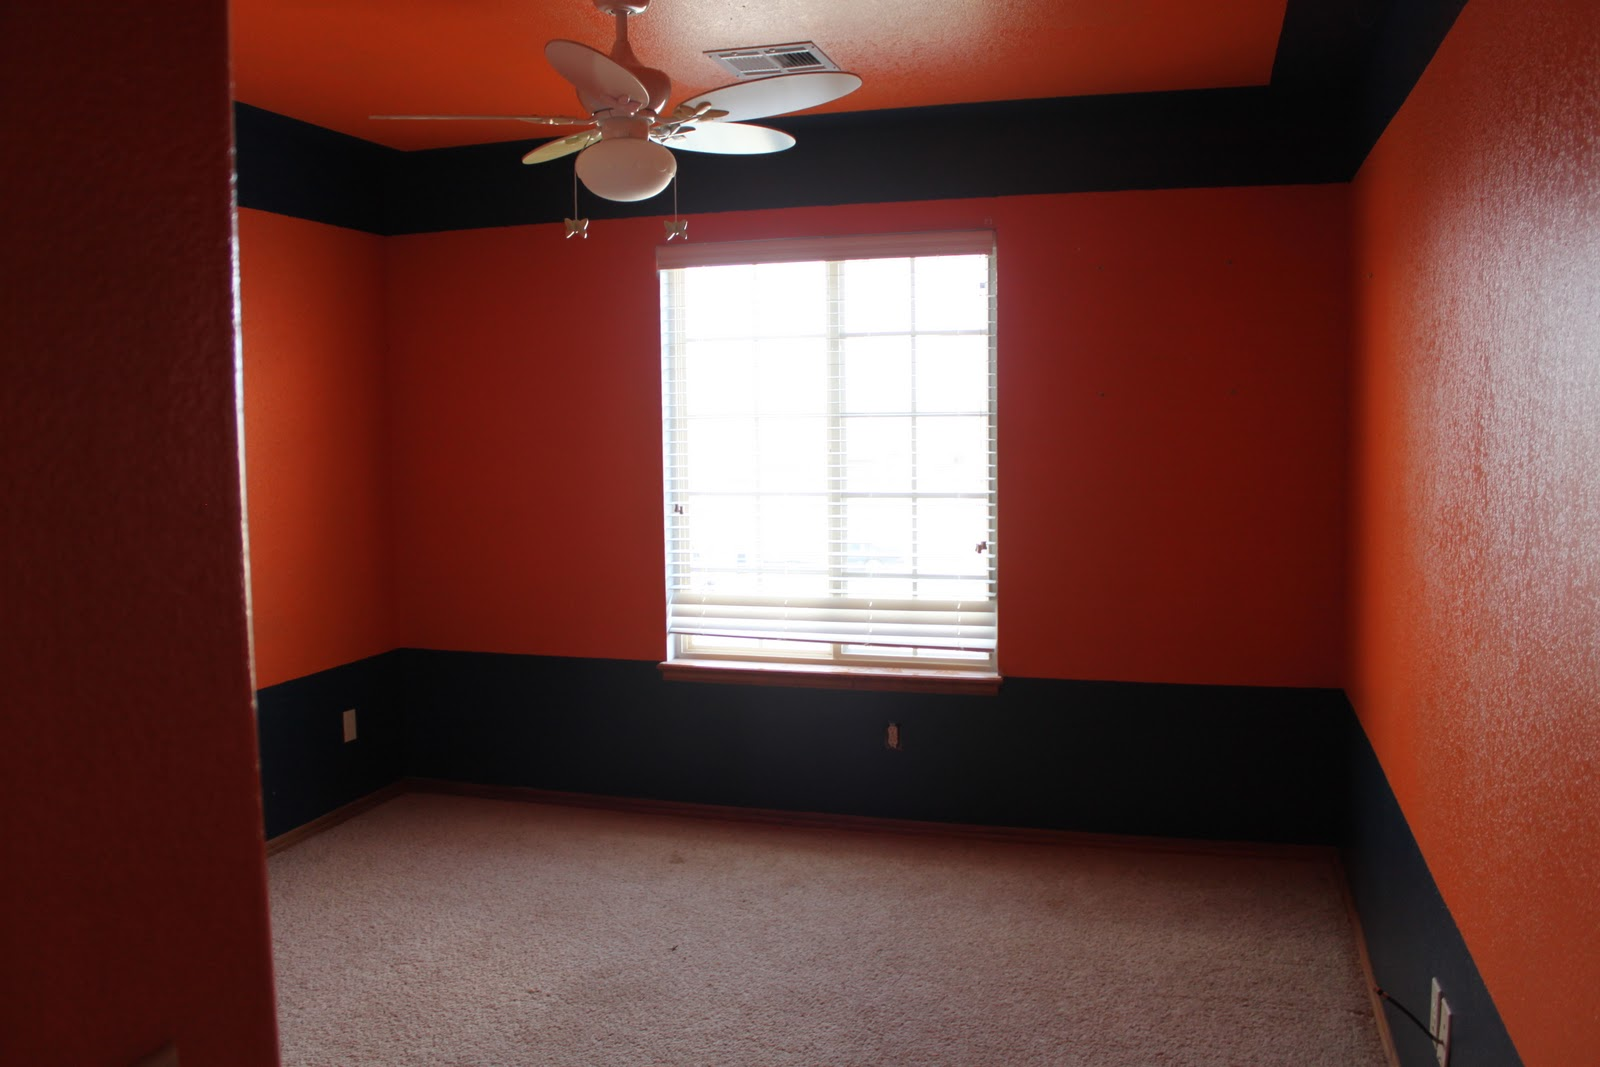 Farewell To The Man Cave And Denver Bronco Room